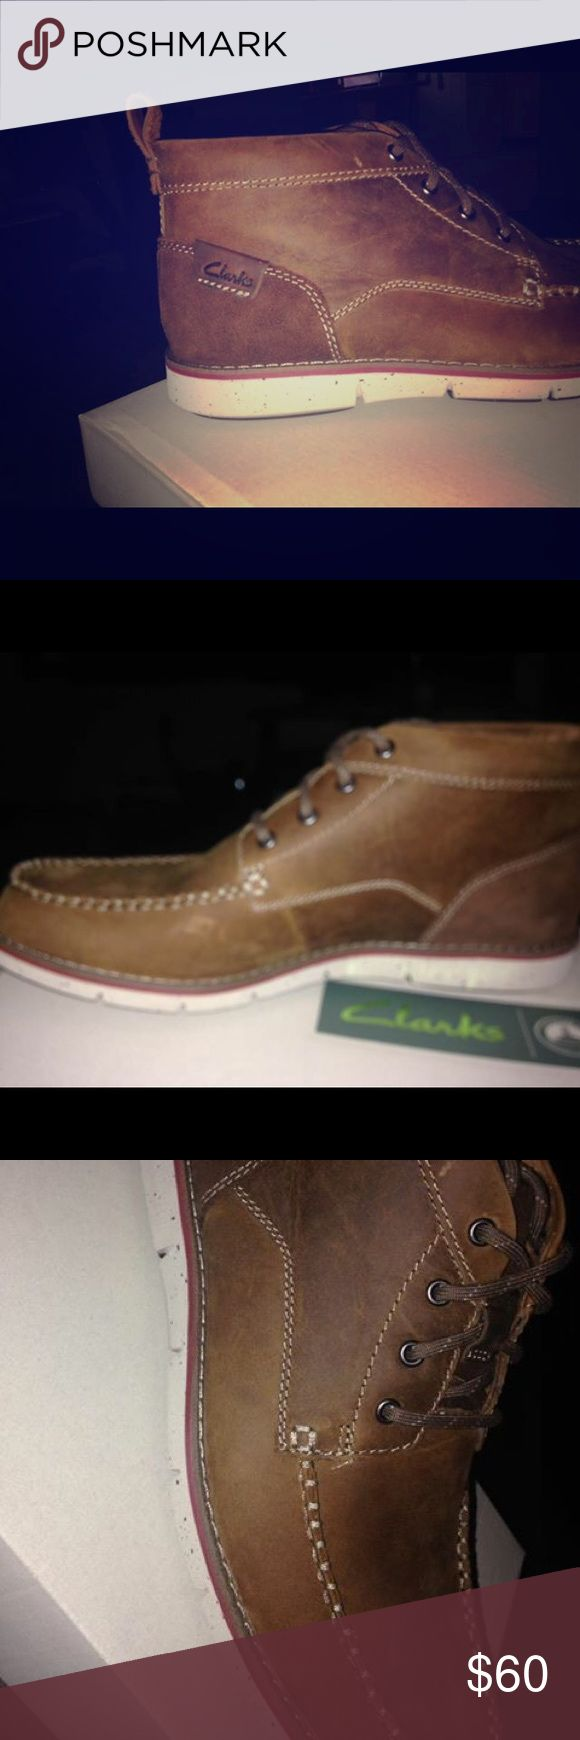 Men's Clarks 9.5 Size 9.5 Unfortunately this was a gift for someone and is the wrong size.  Retails $79.99 plus shipping Clarks Shoes Sneakers